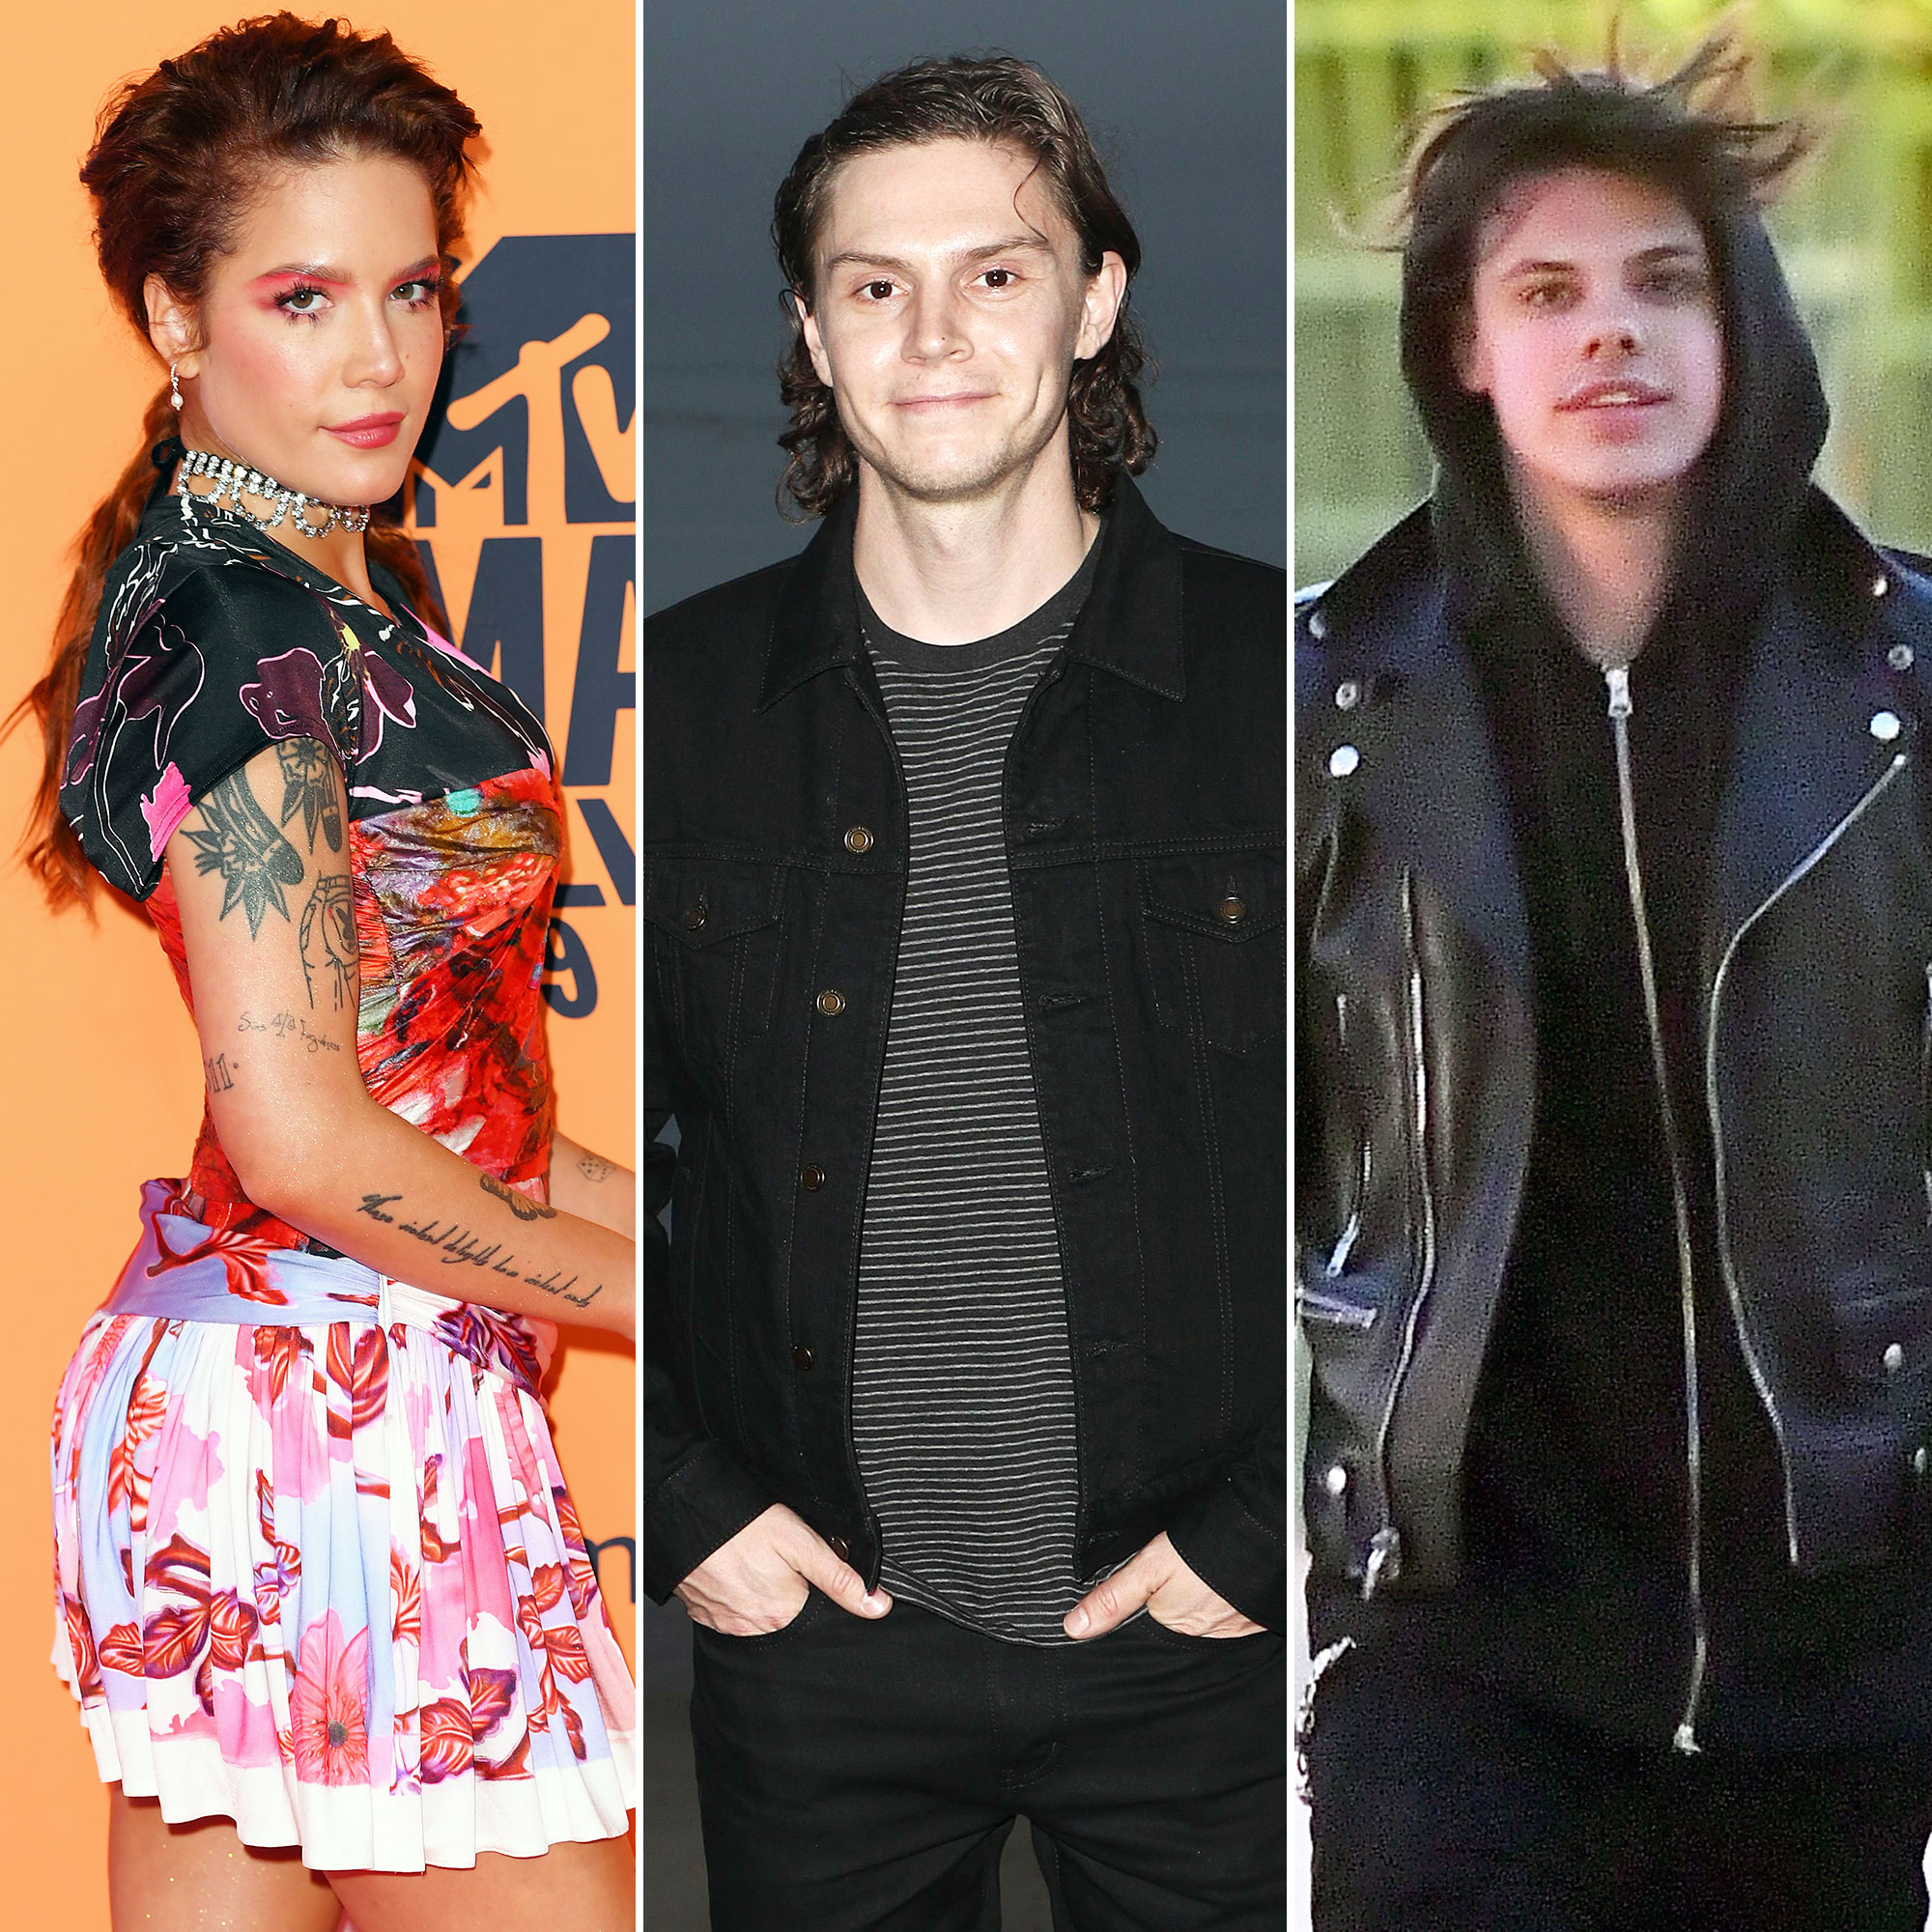 Fans Think Halsey and Evan Peters Broke Up After the Singer Dined With Ex-Boyfriend Yungblood